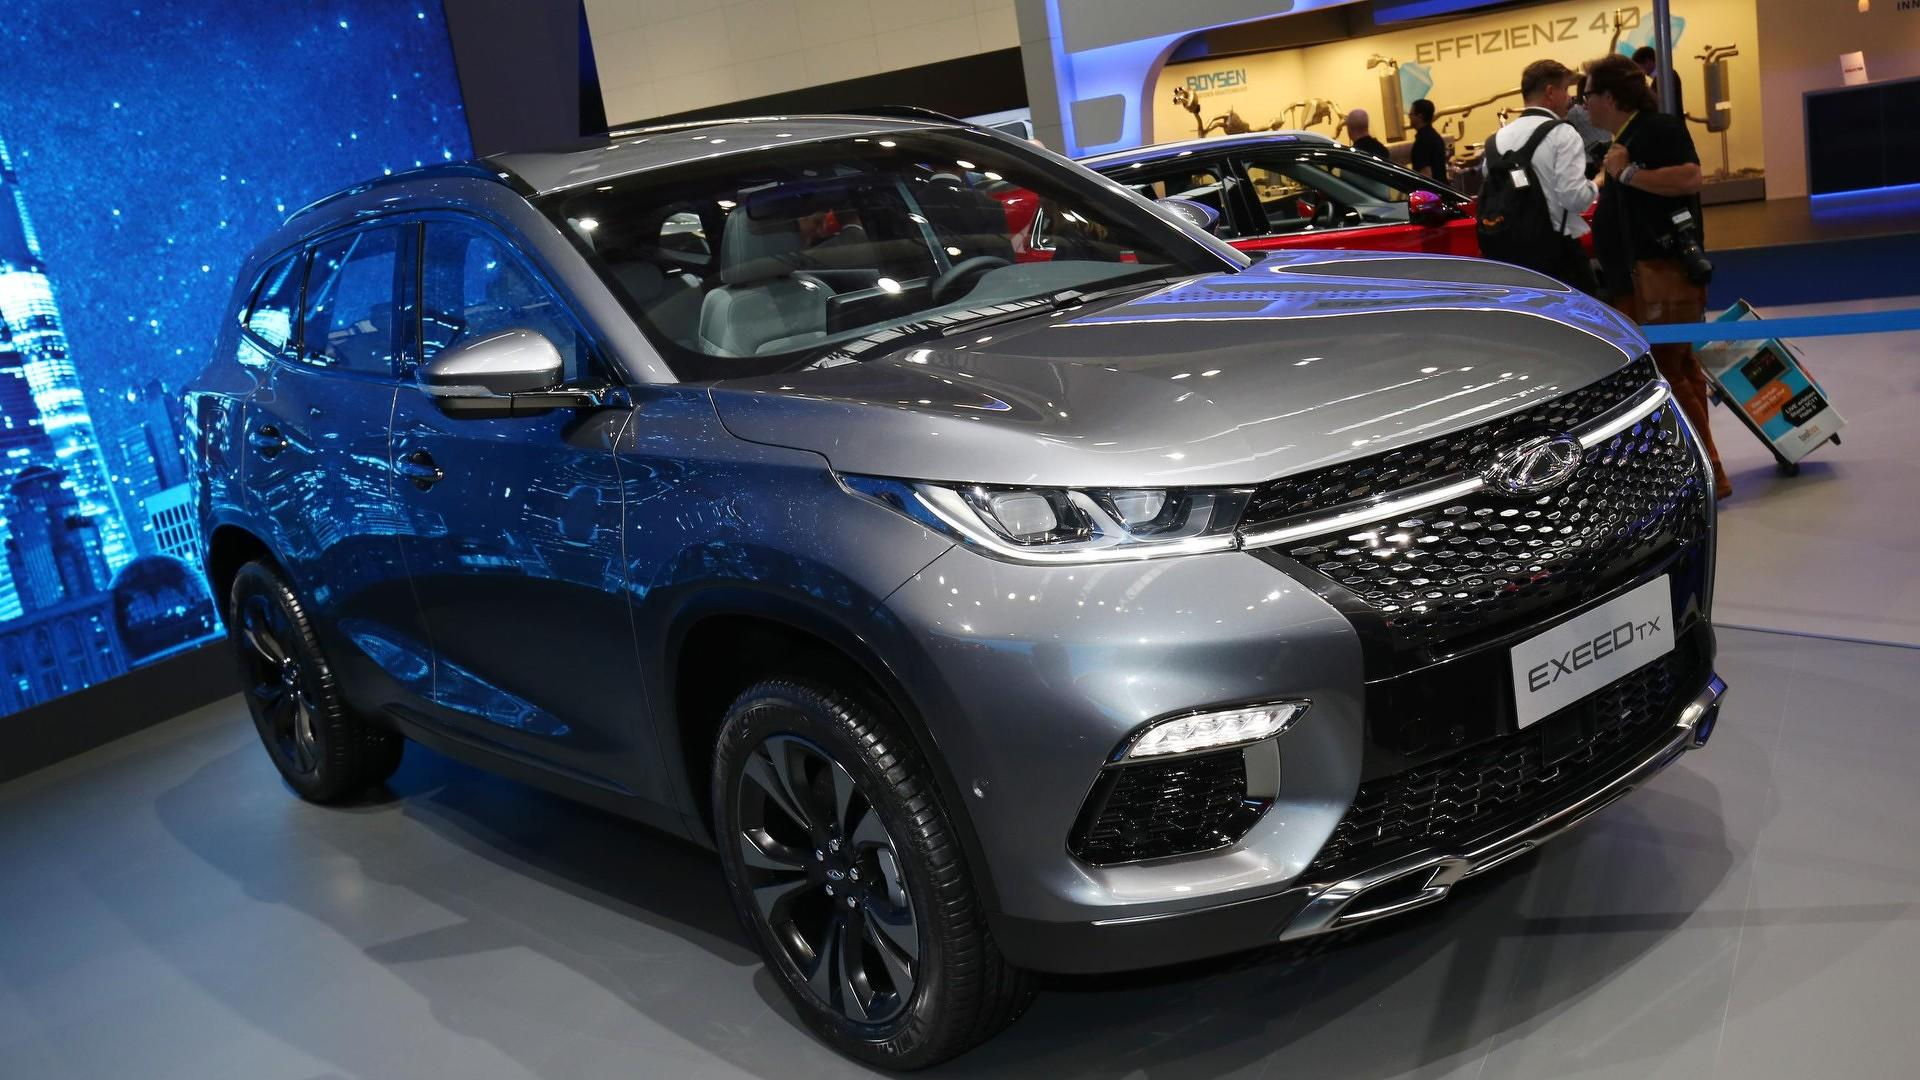 Toyota Of Pullman >> China's Chery Launches In Europe With Exeed Brand, Hybrid SUV